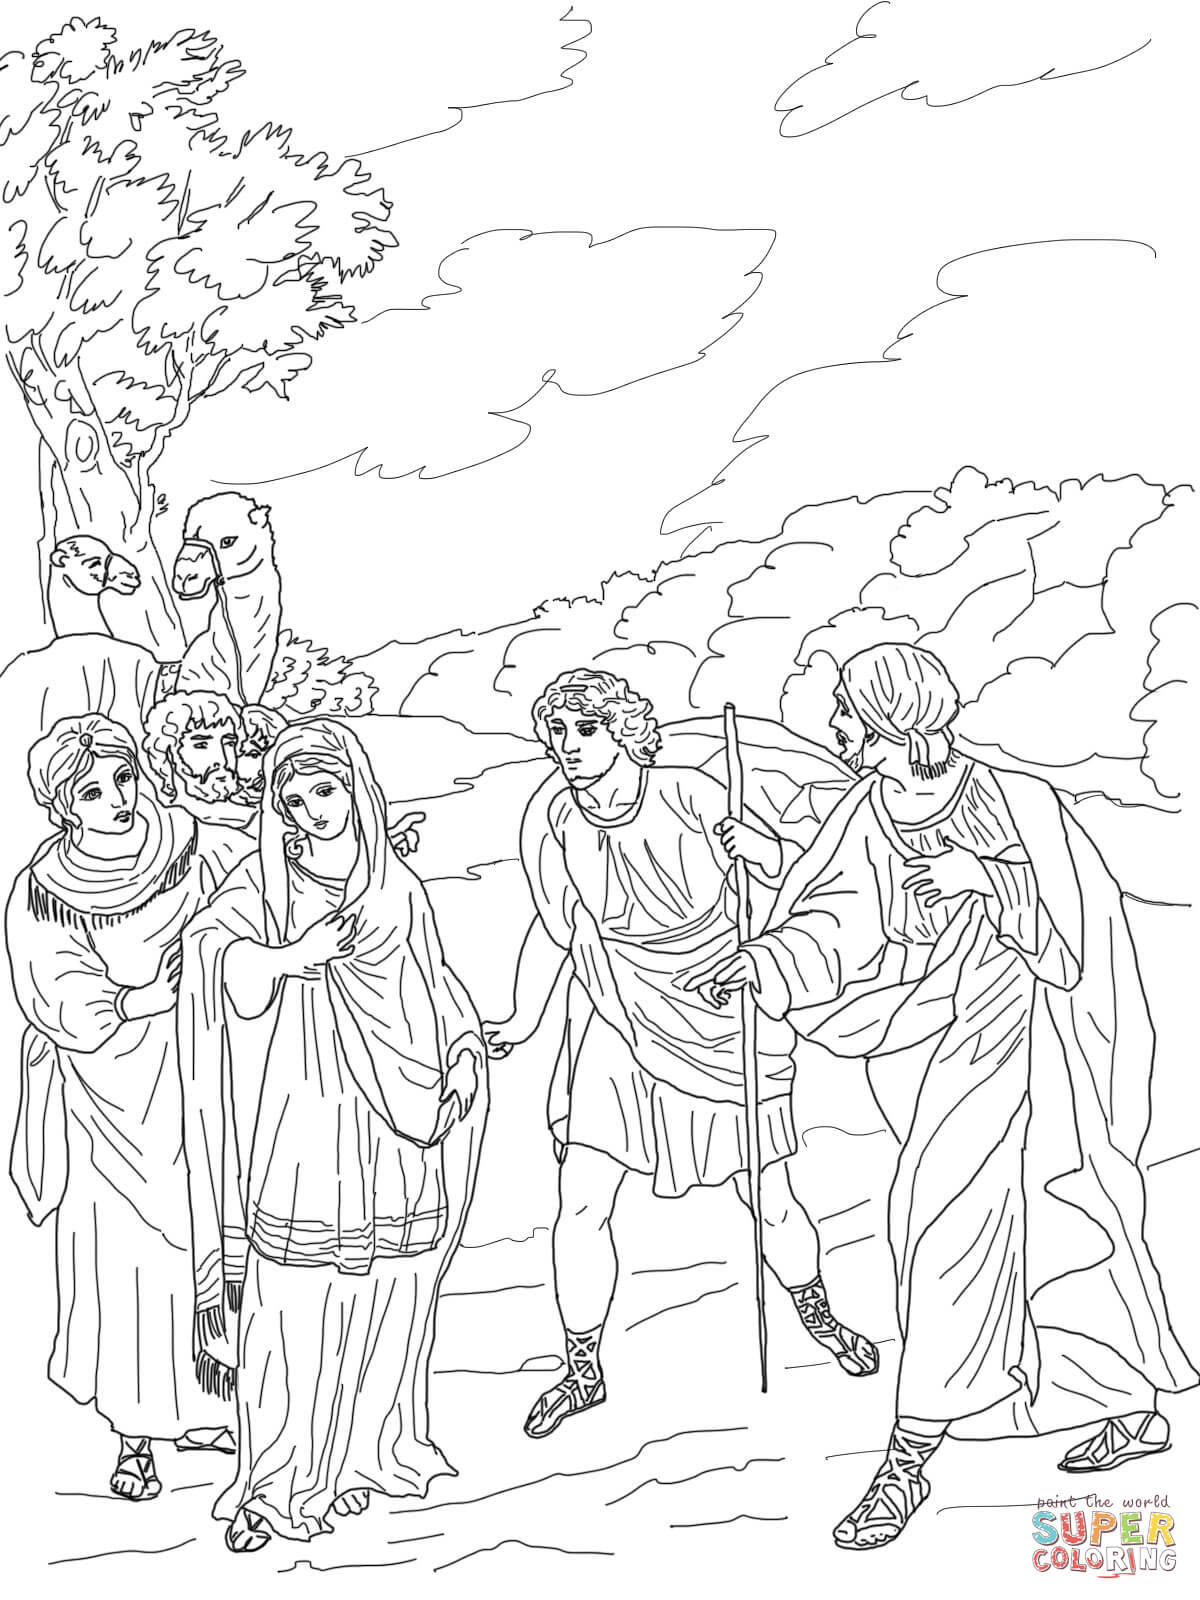 Isaac First Meets Rebekah Coloring Page